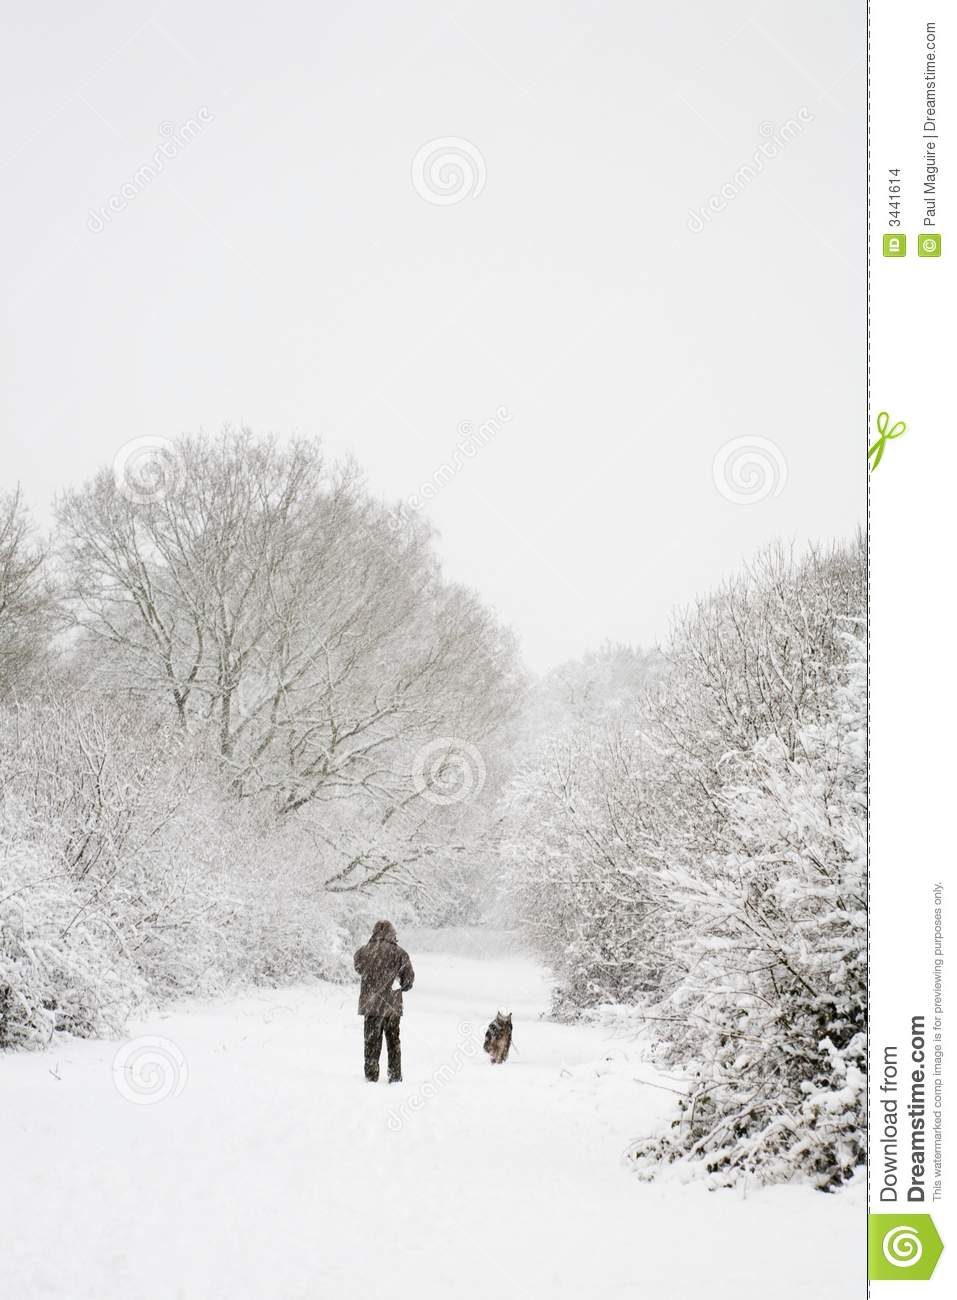 Man And Dog In Snow Stock Photo. Image Of Peaceful